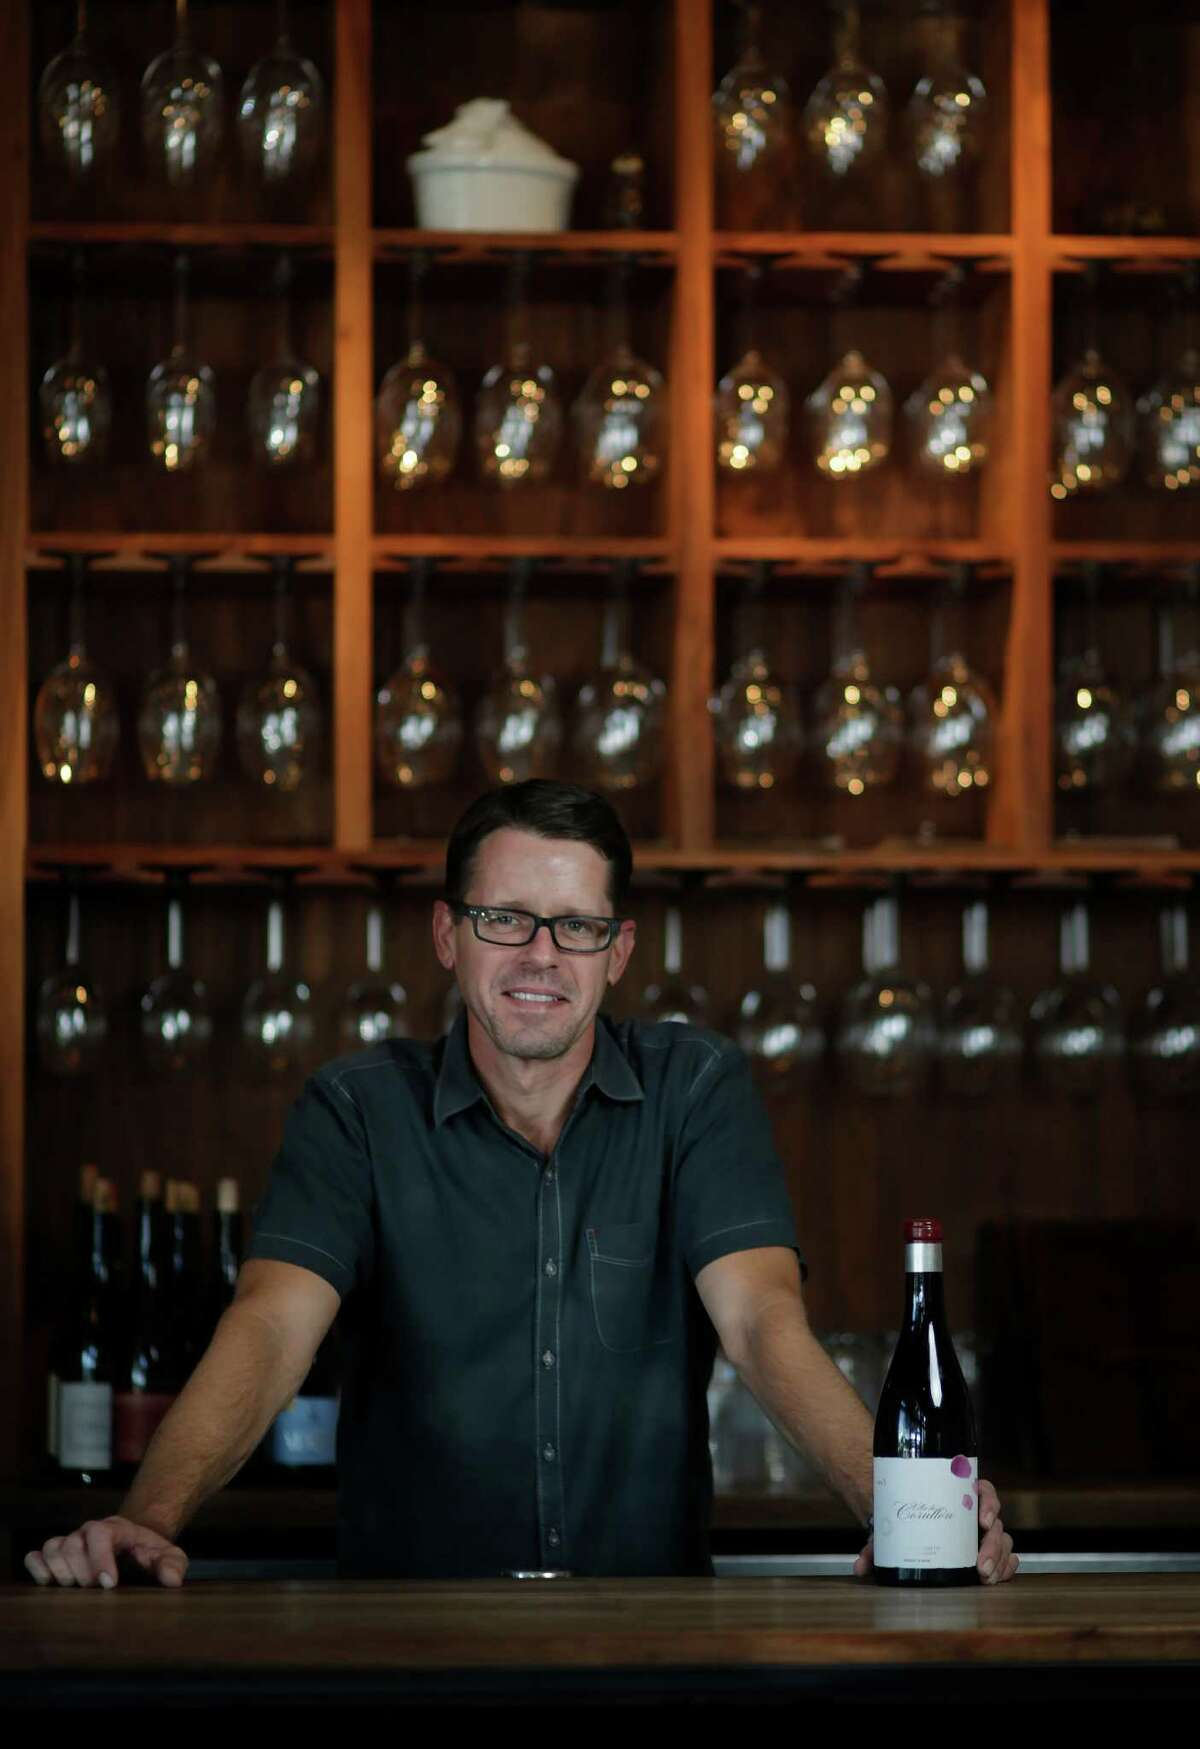 Matthew Pridgen, wine director at Underbelly, with a Mencia from Bierzo in western Spain, Tuesday, Nov. 15, 2016, in Houston. ( Mark Mulligan / Houston Chronicle )